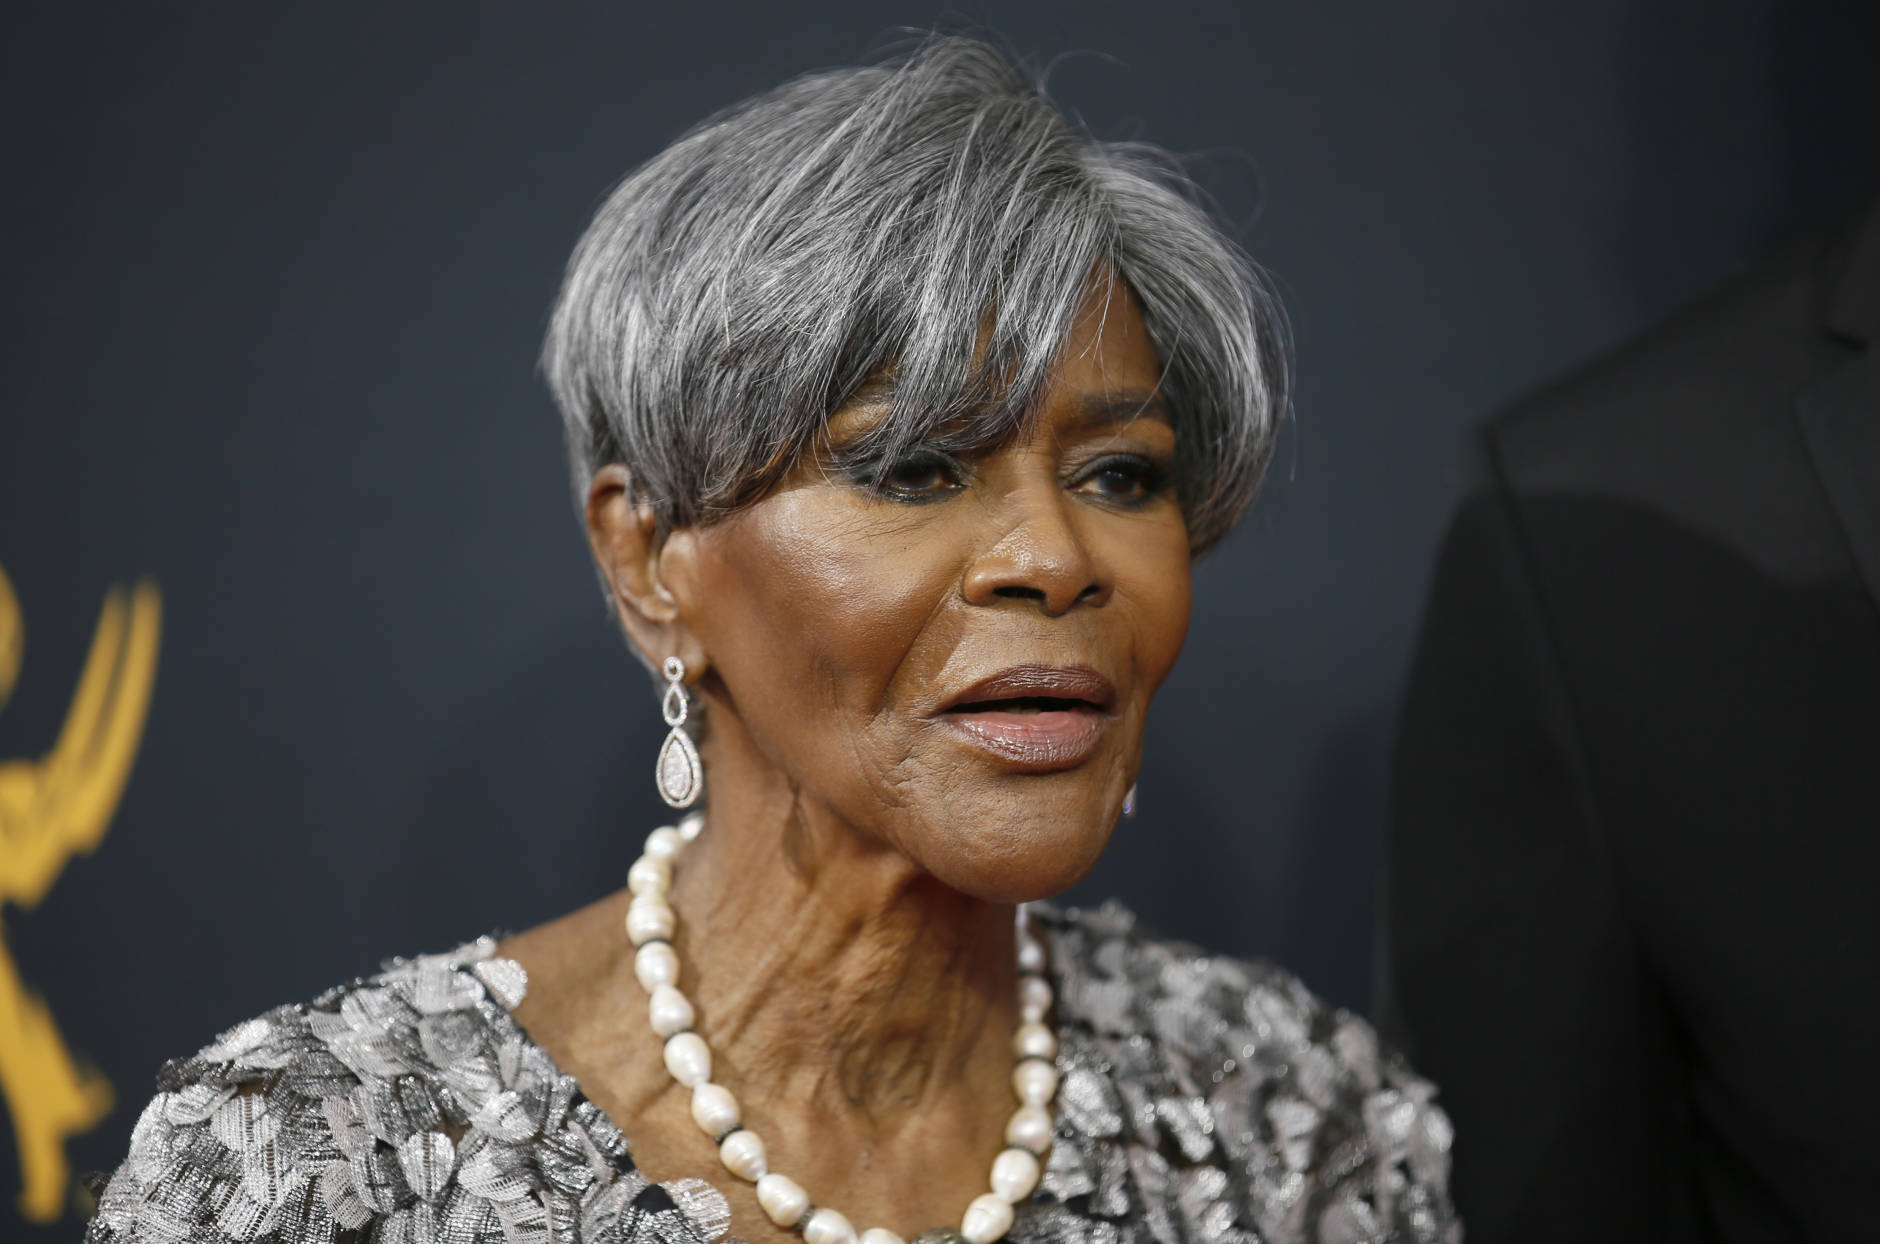 Cicely Tyson arrives at the 68th Primetime Emmy Awards on Sunday, Sept. 18, 2016, at the Microsoft Theater in Los Angeles. (Photo by Danny Moloshok/Invision for the Television Academy/AP Images)